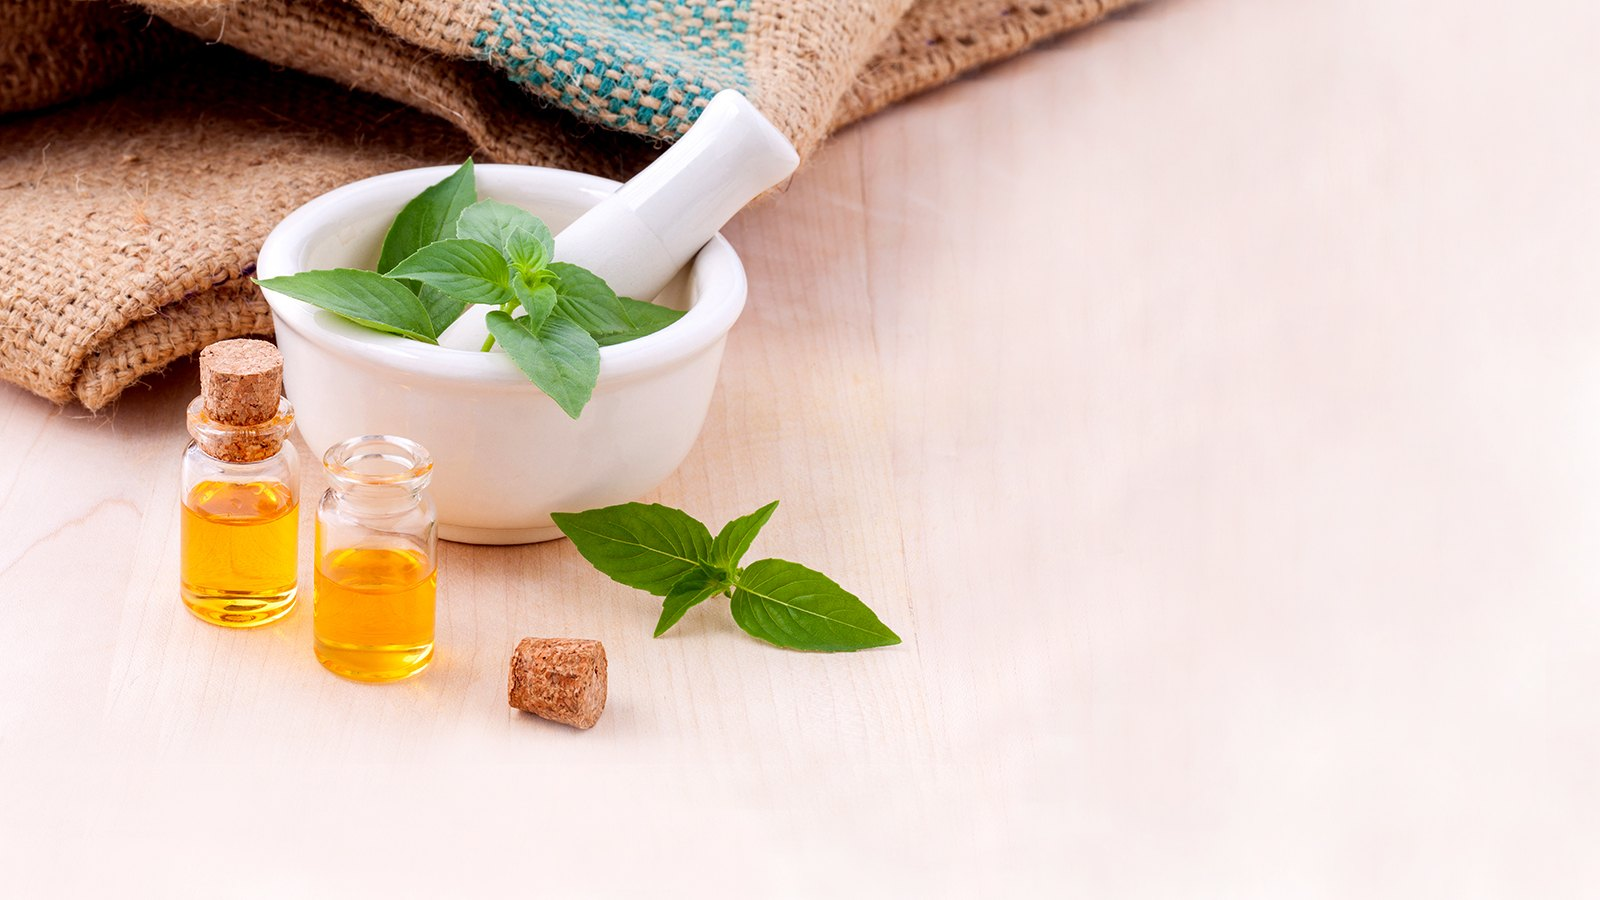 Benefits of Aromatherapy - Massage & Diffusion